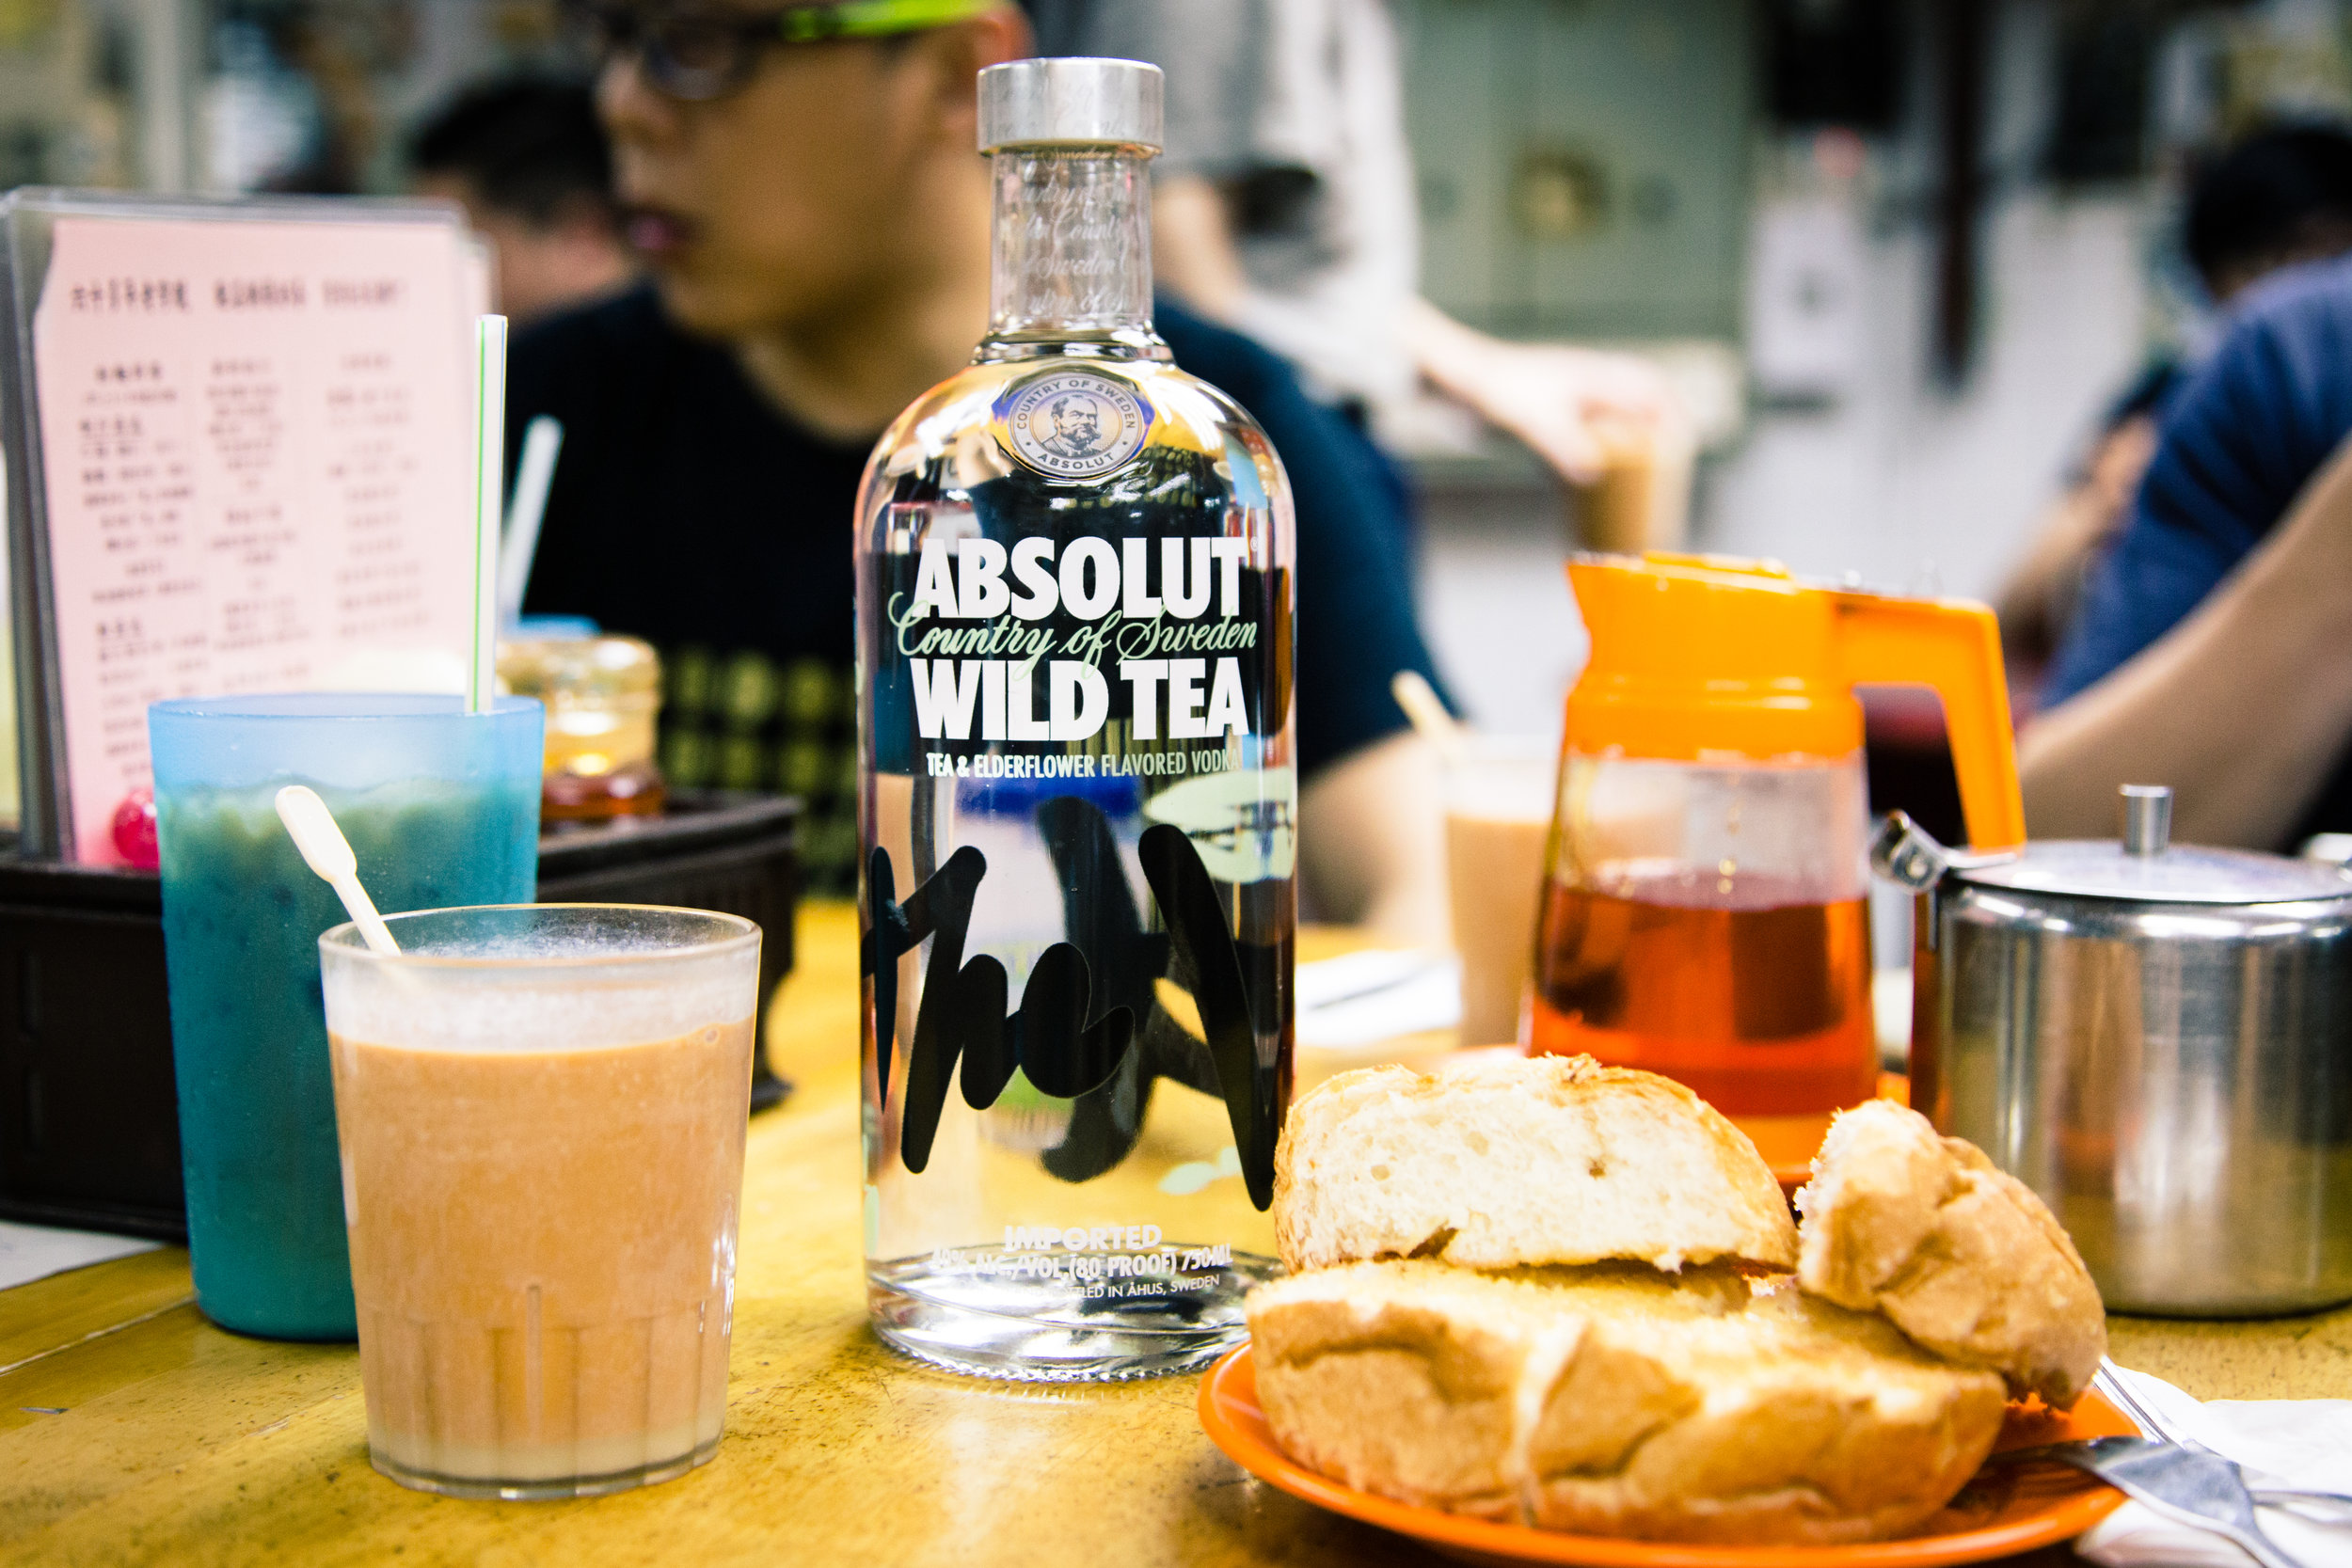 STIR PR's photoshoot with Absolut Wild Tea paired with a local favourite- Ying Yang (Coffee and Milk Tea) with a side of buttered pineapple bun.